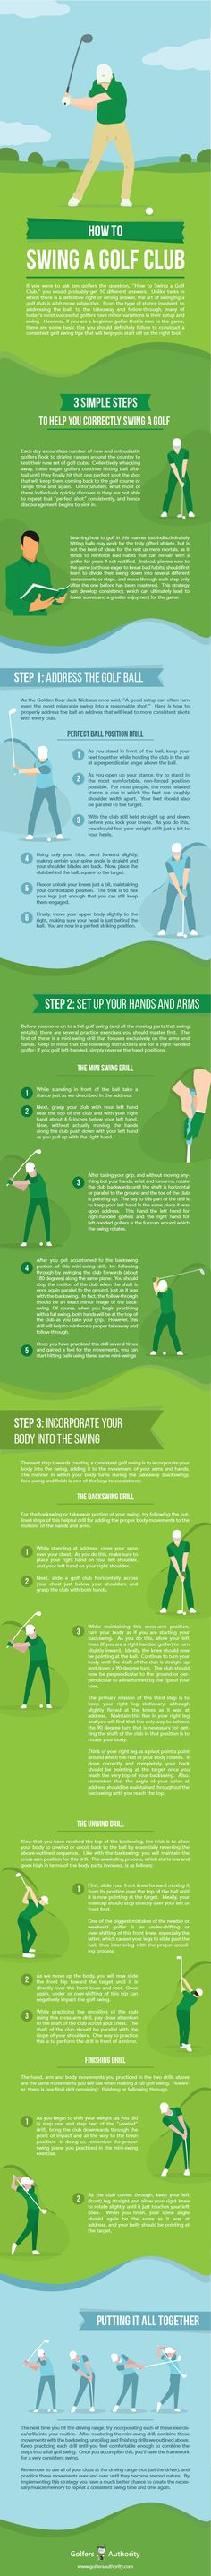 Not sure if you are swinging the golf club correctly? Check out our latest guide on how to swing a golf club and begin hitting the ball consistently every time.